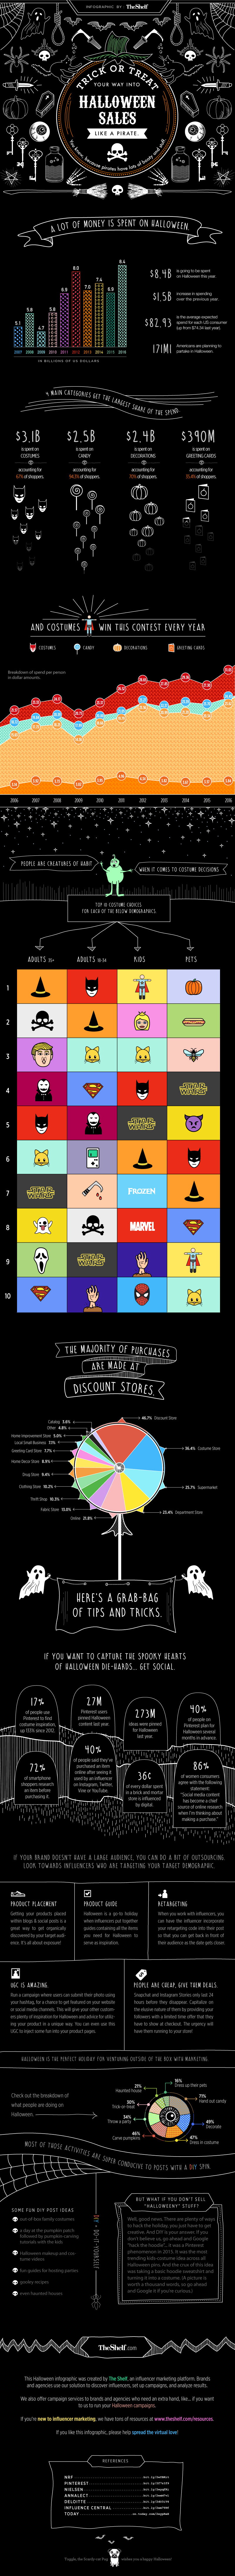 Trick or Treat Your Way into Halloween Sales [Infographic] | Social Media Today